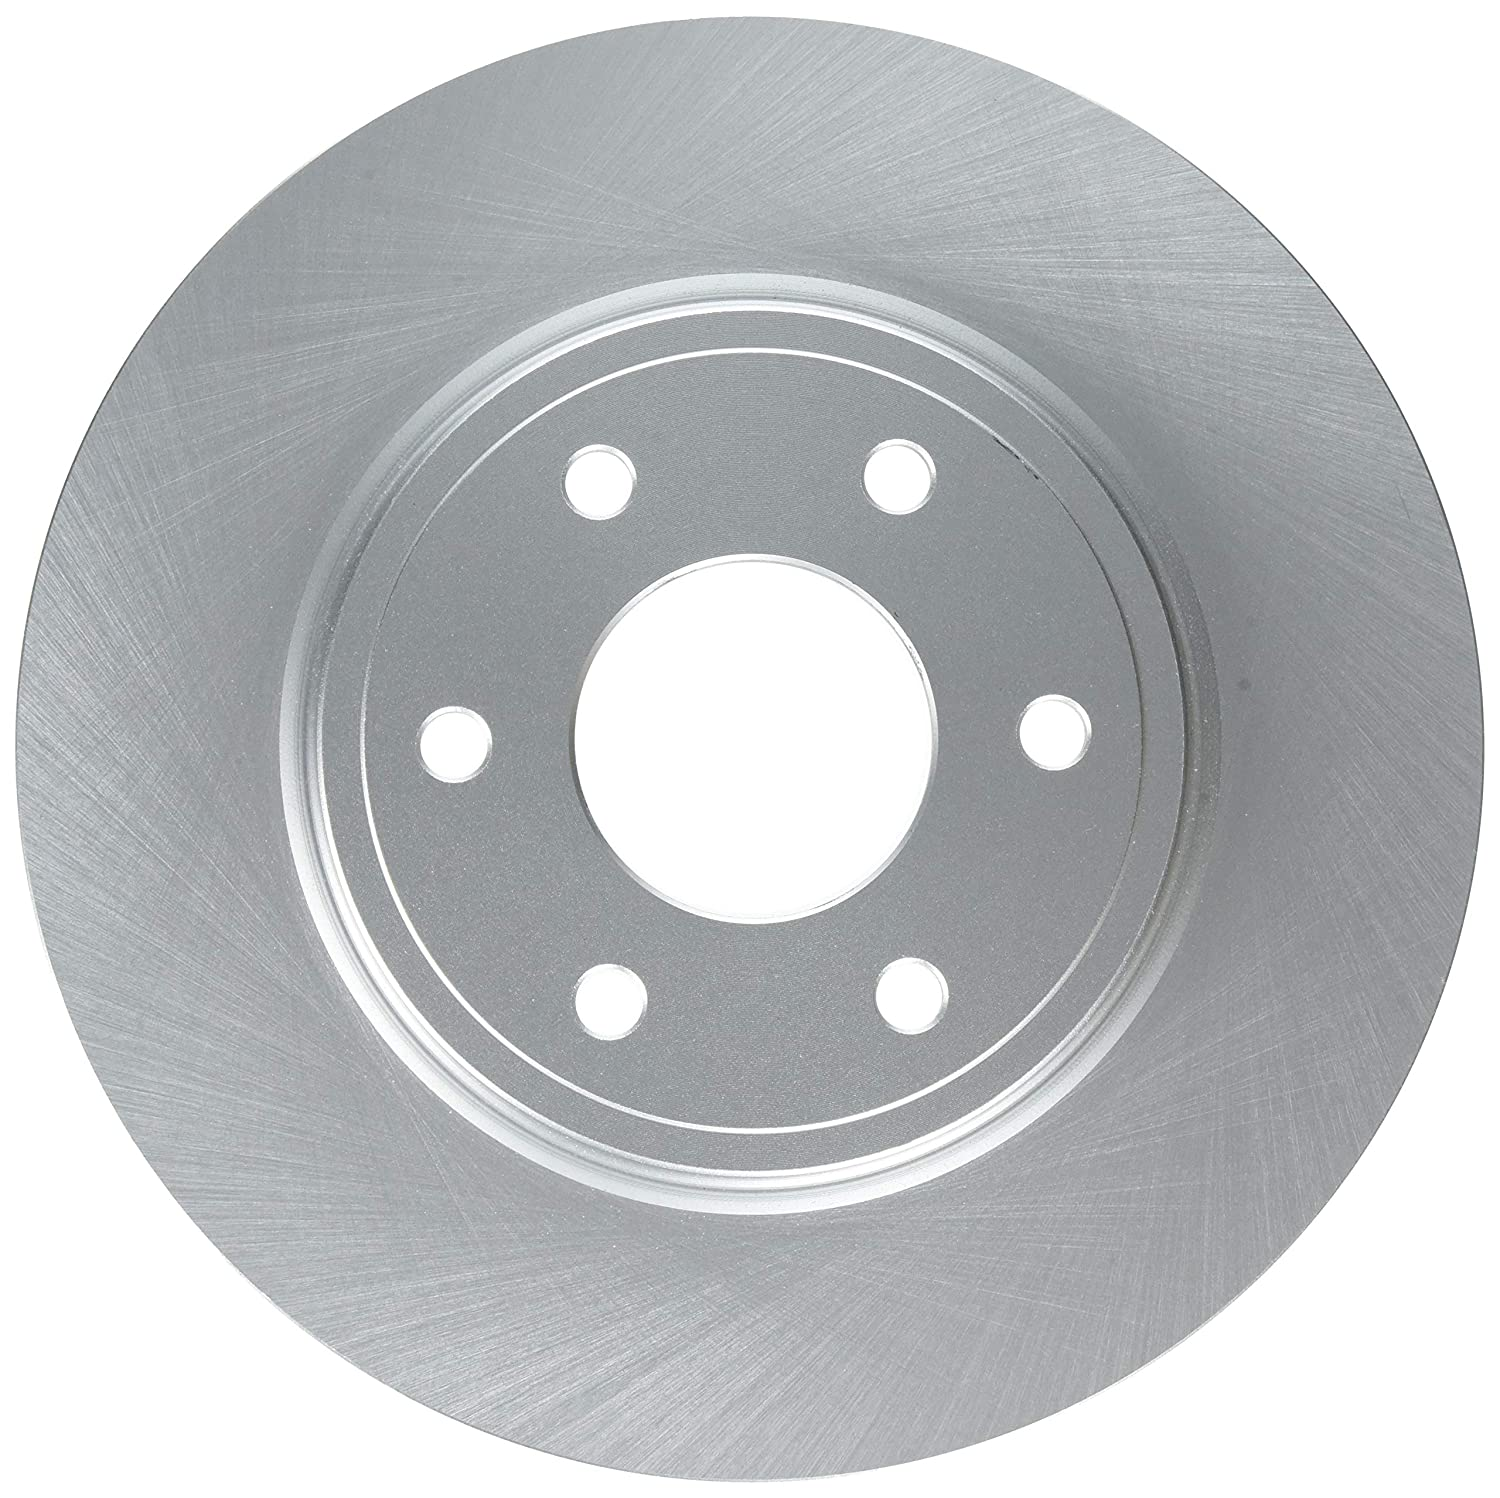 Raybestos 980369FZN Rust Prevention Technology Coated Rotor Brake